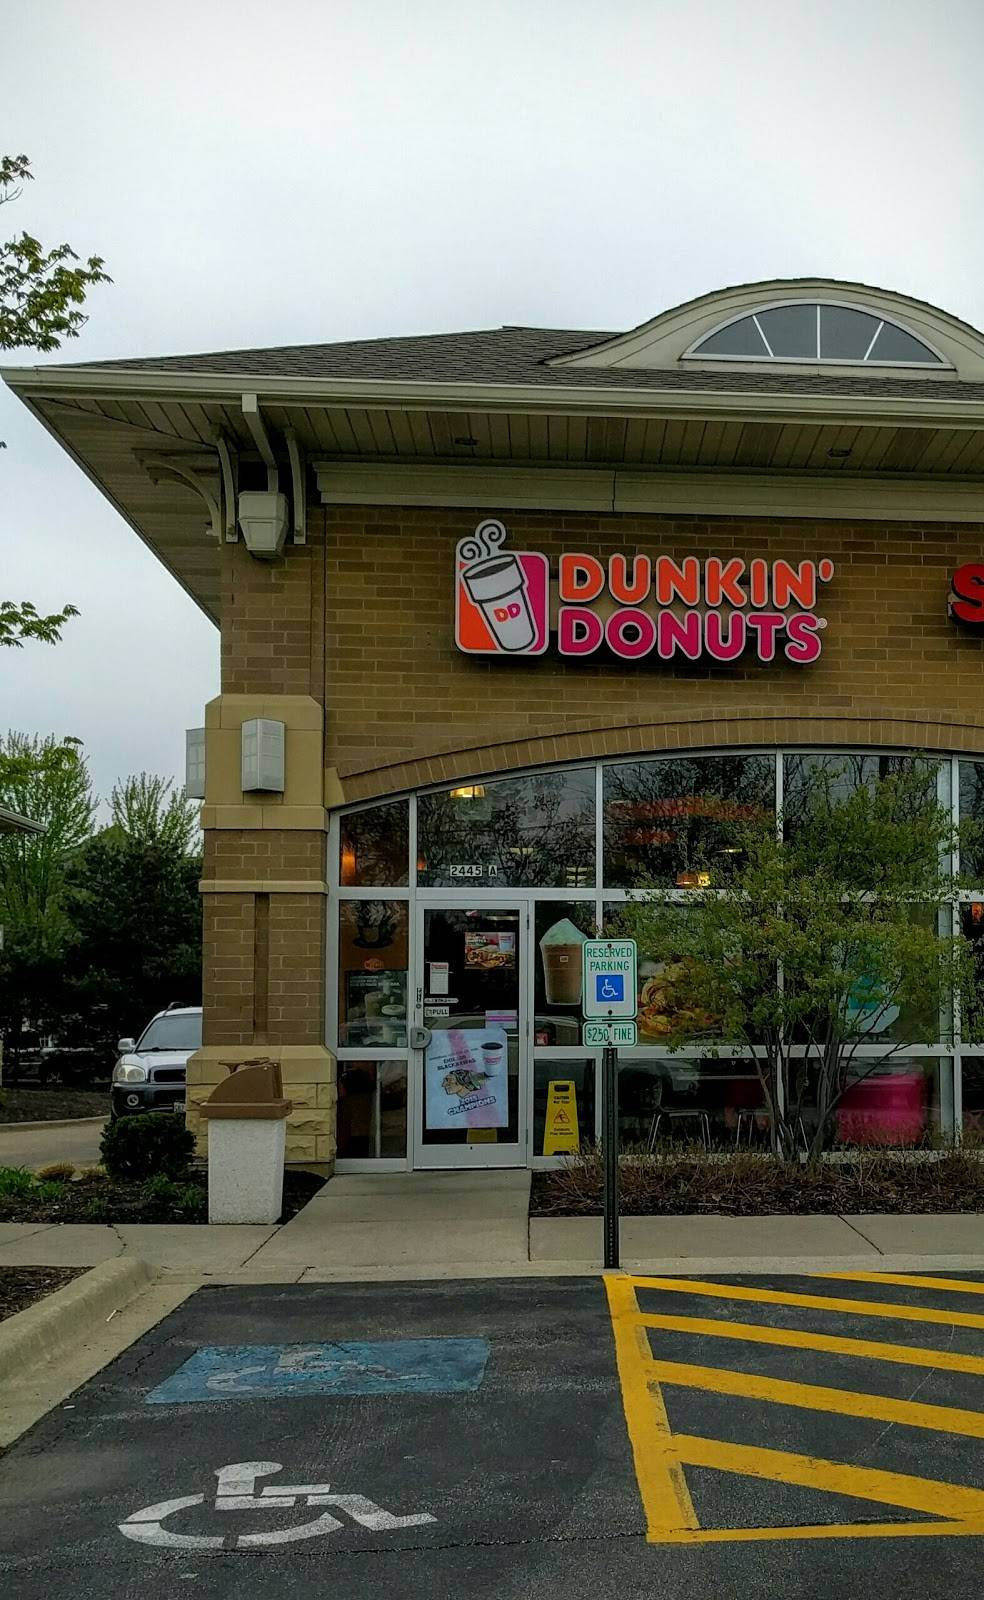 Dunkin Donuts   cafe   2445 75th St, Darien, IL 60561, USA   6304270971 OR +1 630-427-0971